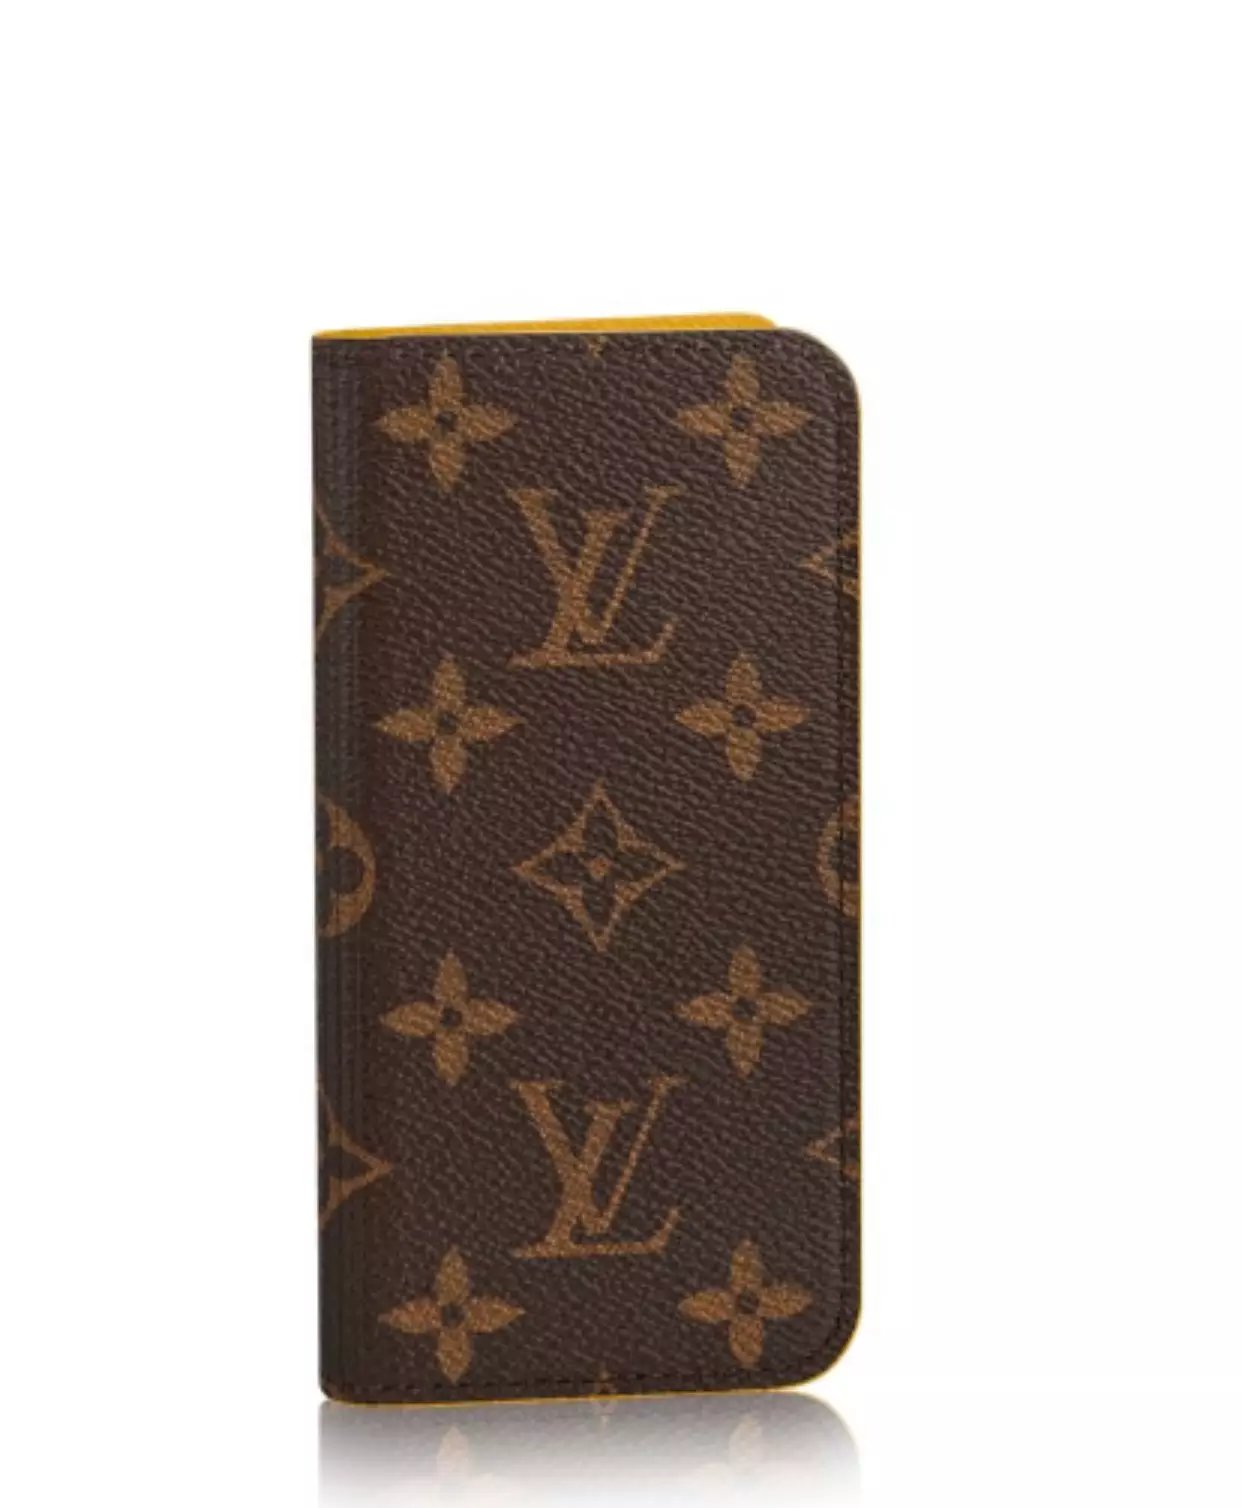 iphone filzhülle iphone klapphülle Louis Vuitton iphone7 Plus hülle handy hülle personalisiert iphone 7 Plus luxus hülle apple iphone ca7 leder die besten iphone ca7 iphone 7 Plus a7 apple handytasche für iphone 7 Plus